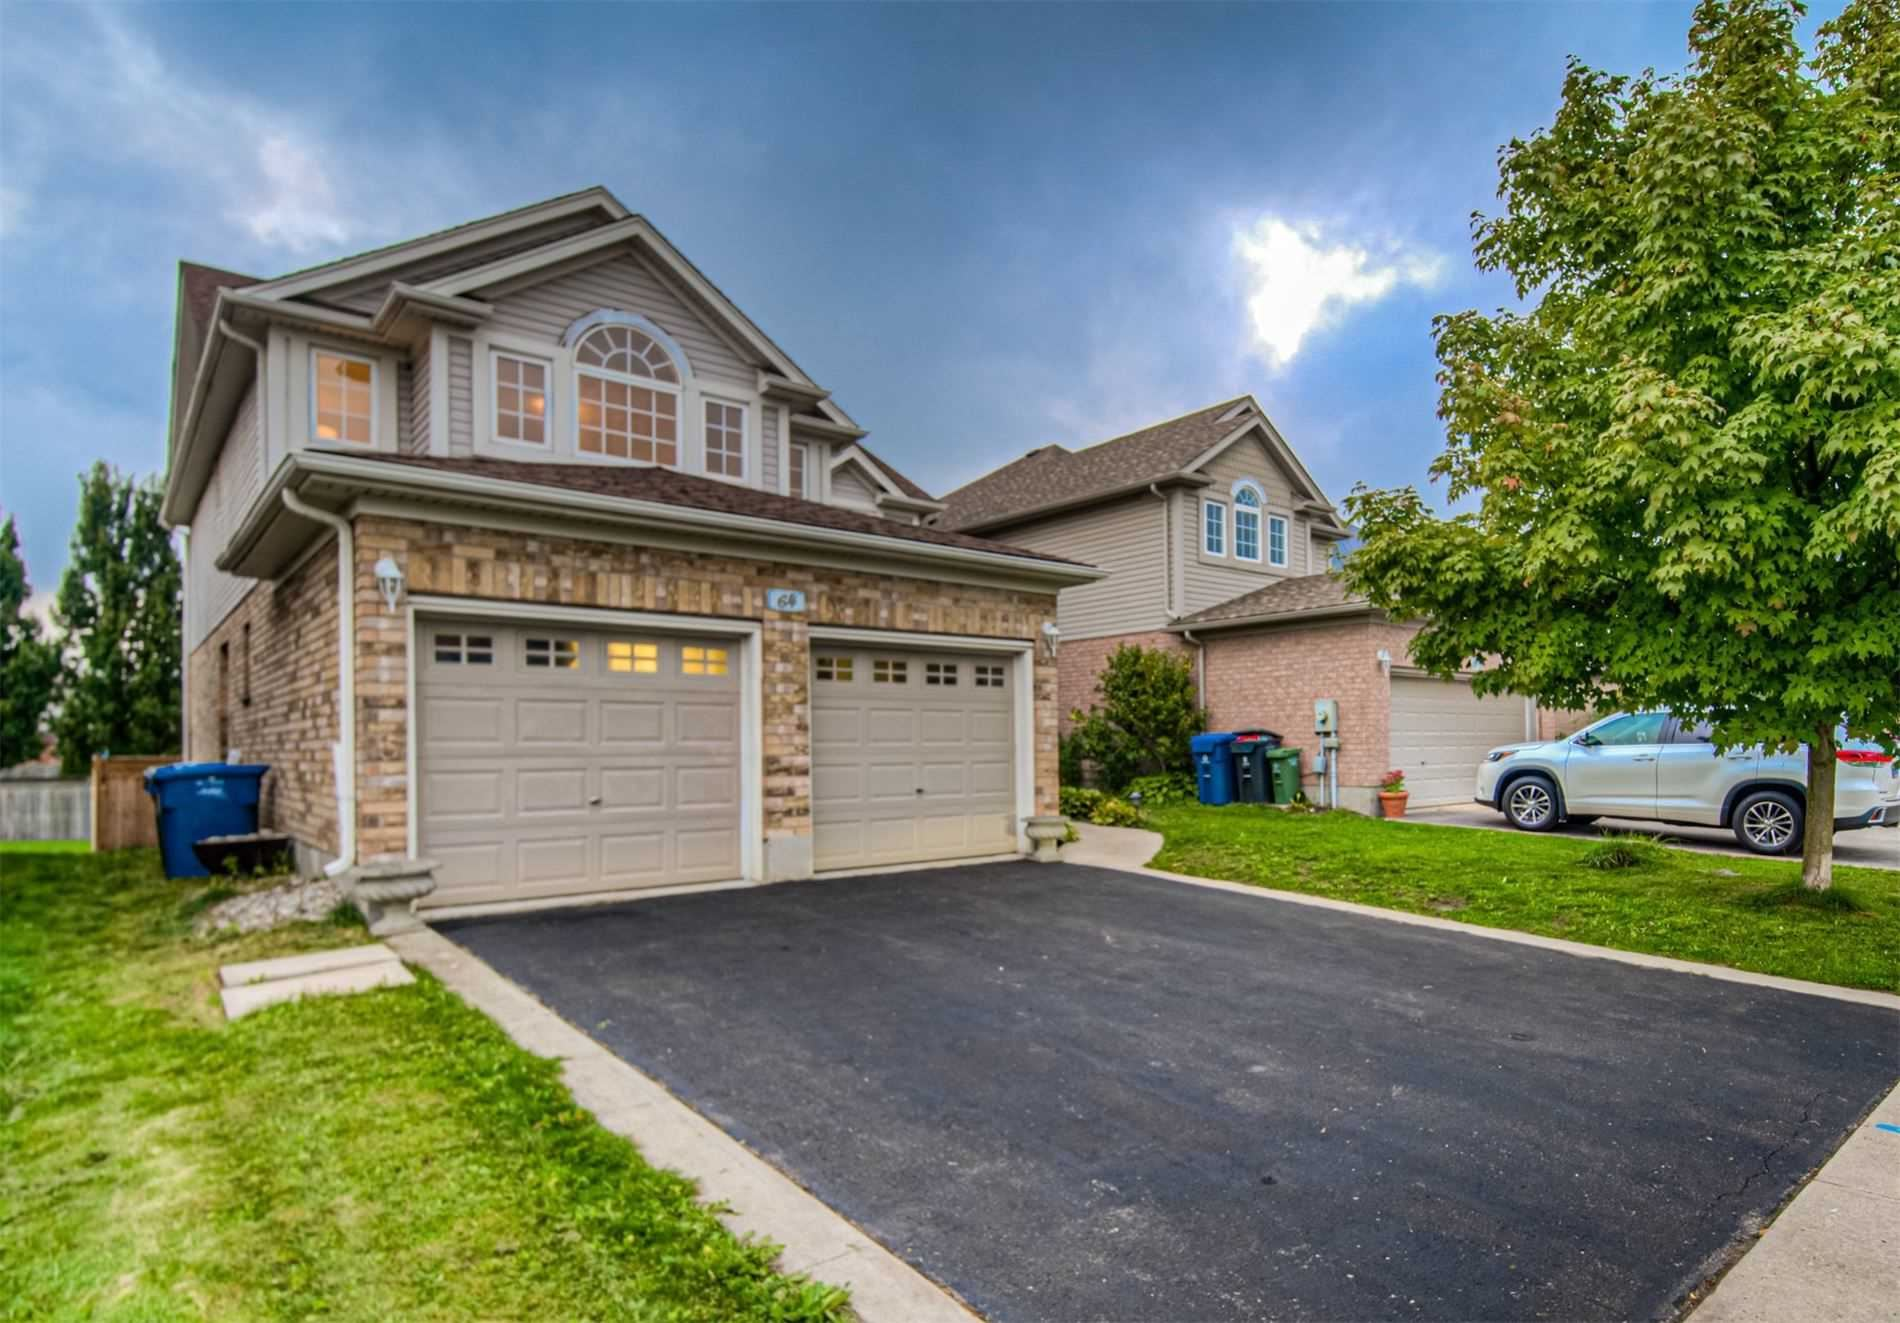 64 Milson Cres, Guelph, ON N1C1G6 - MLS#: X5394889